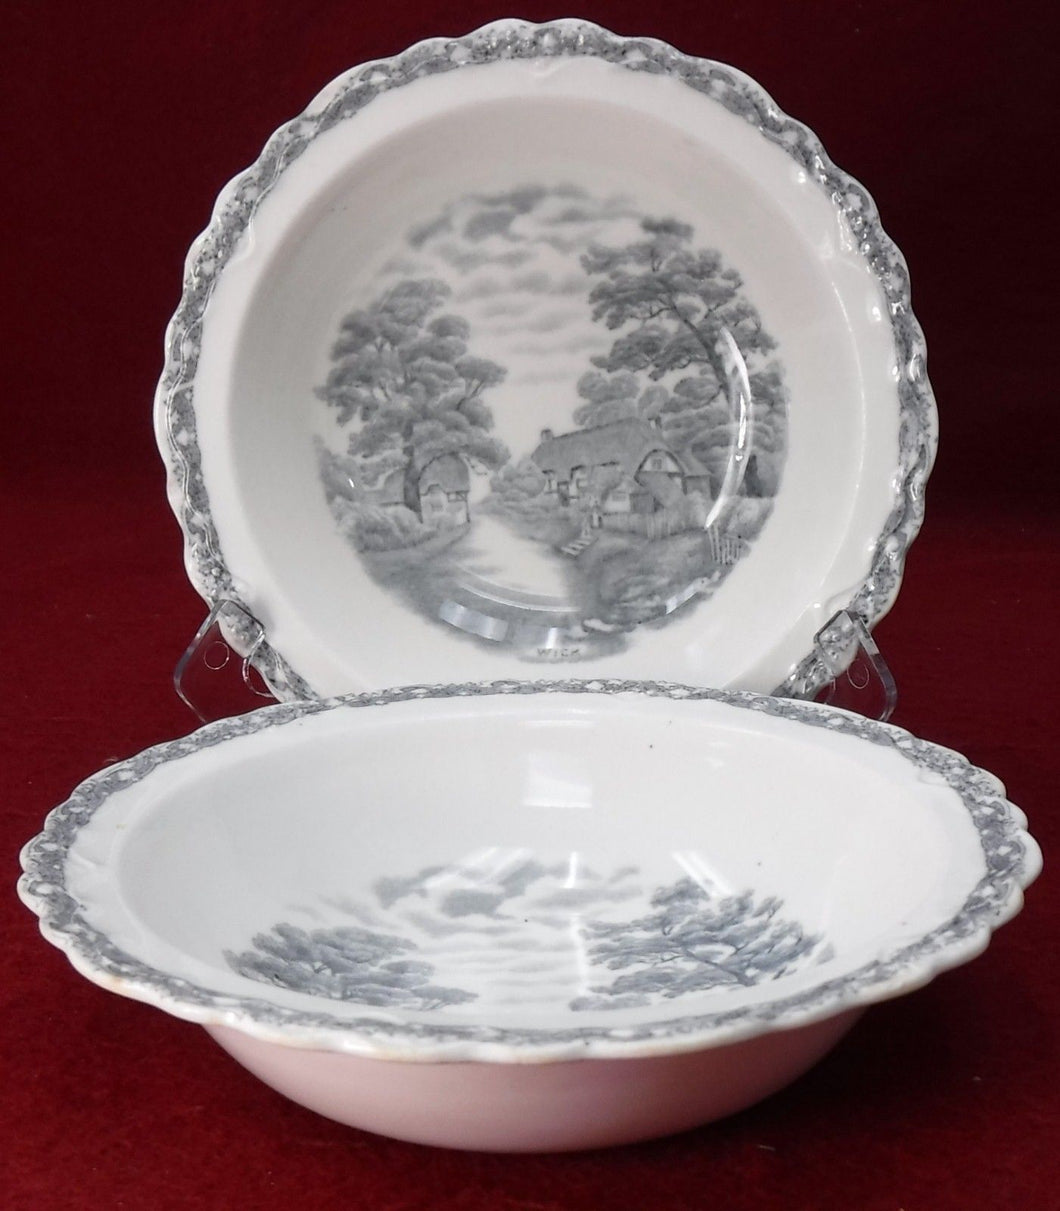 OLD HALL china COUNTRY SIDE GRAY pattern CEREAL BOWL 6-5/8